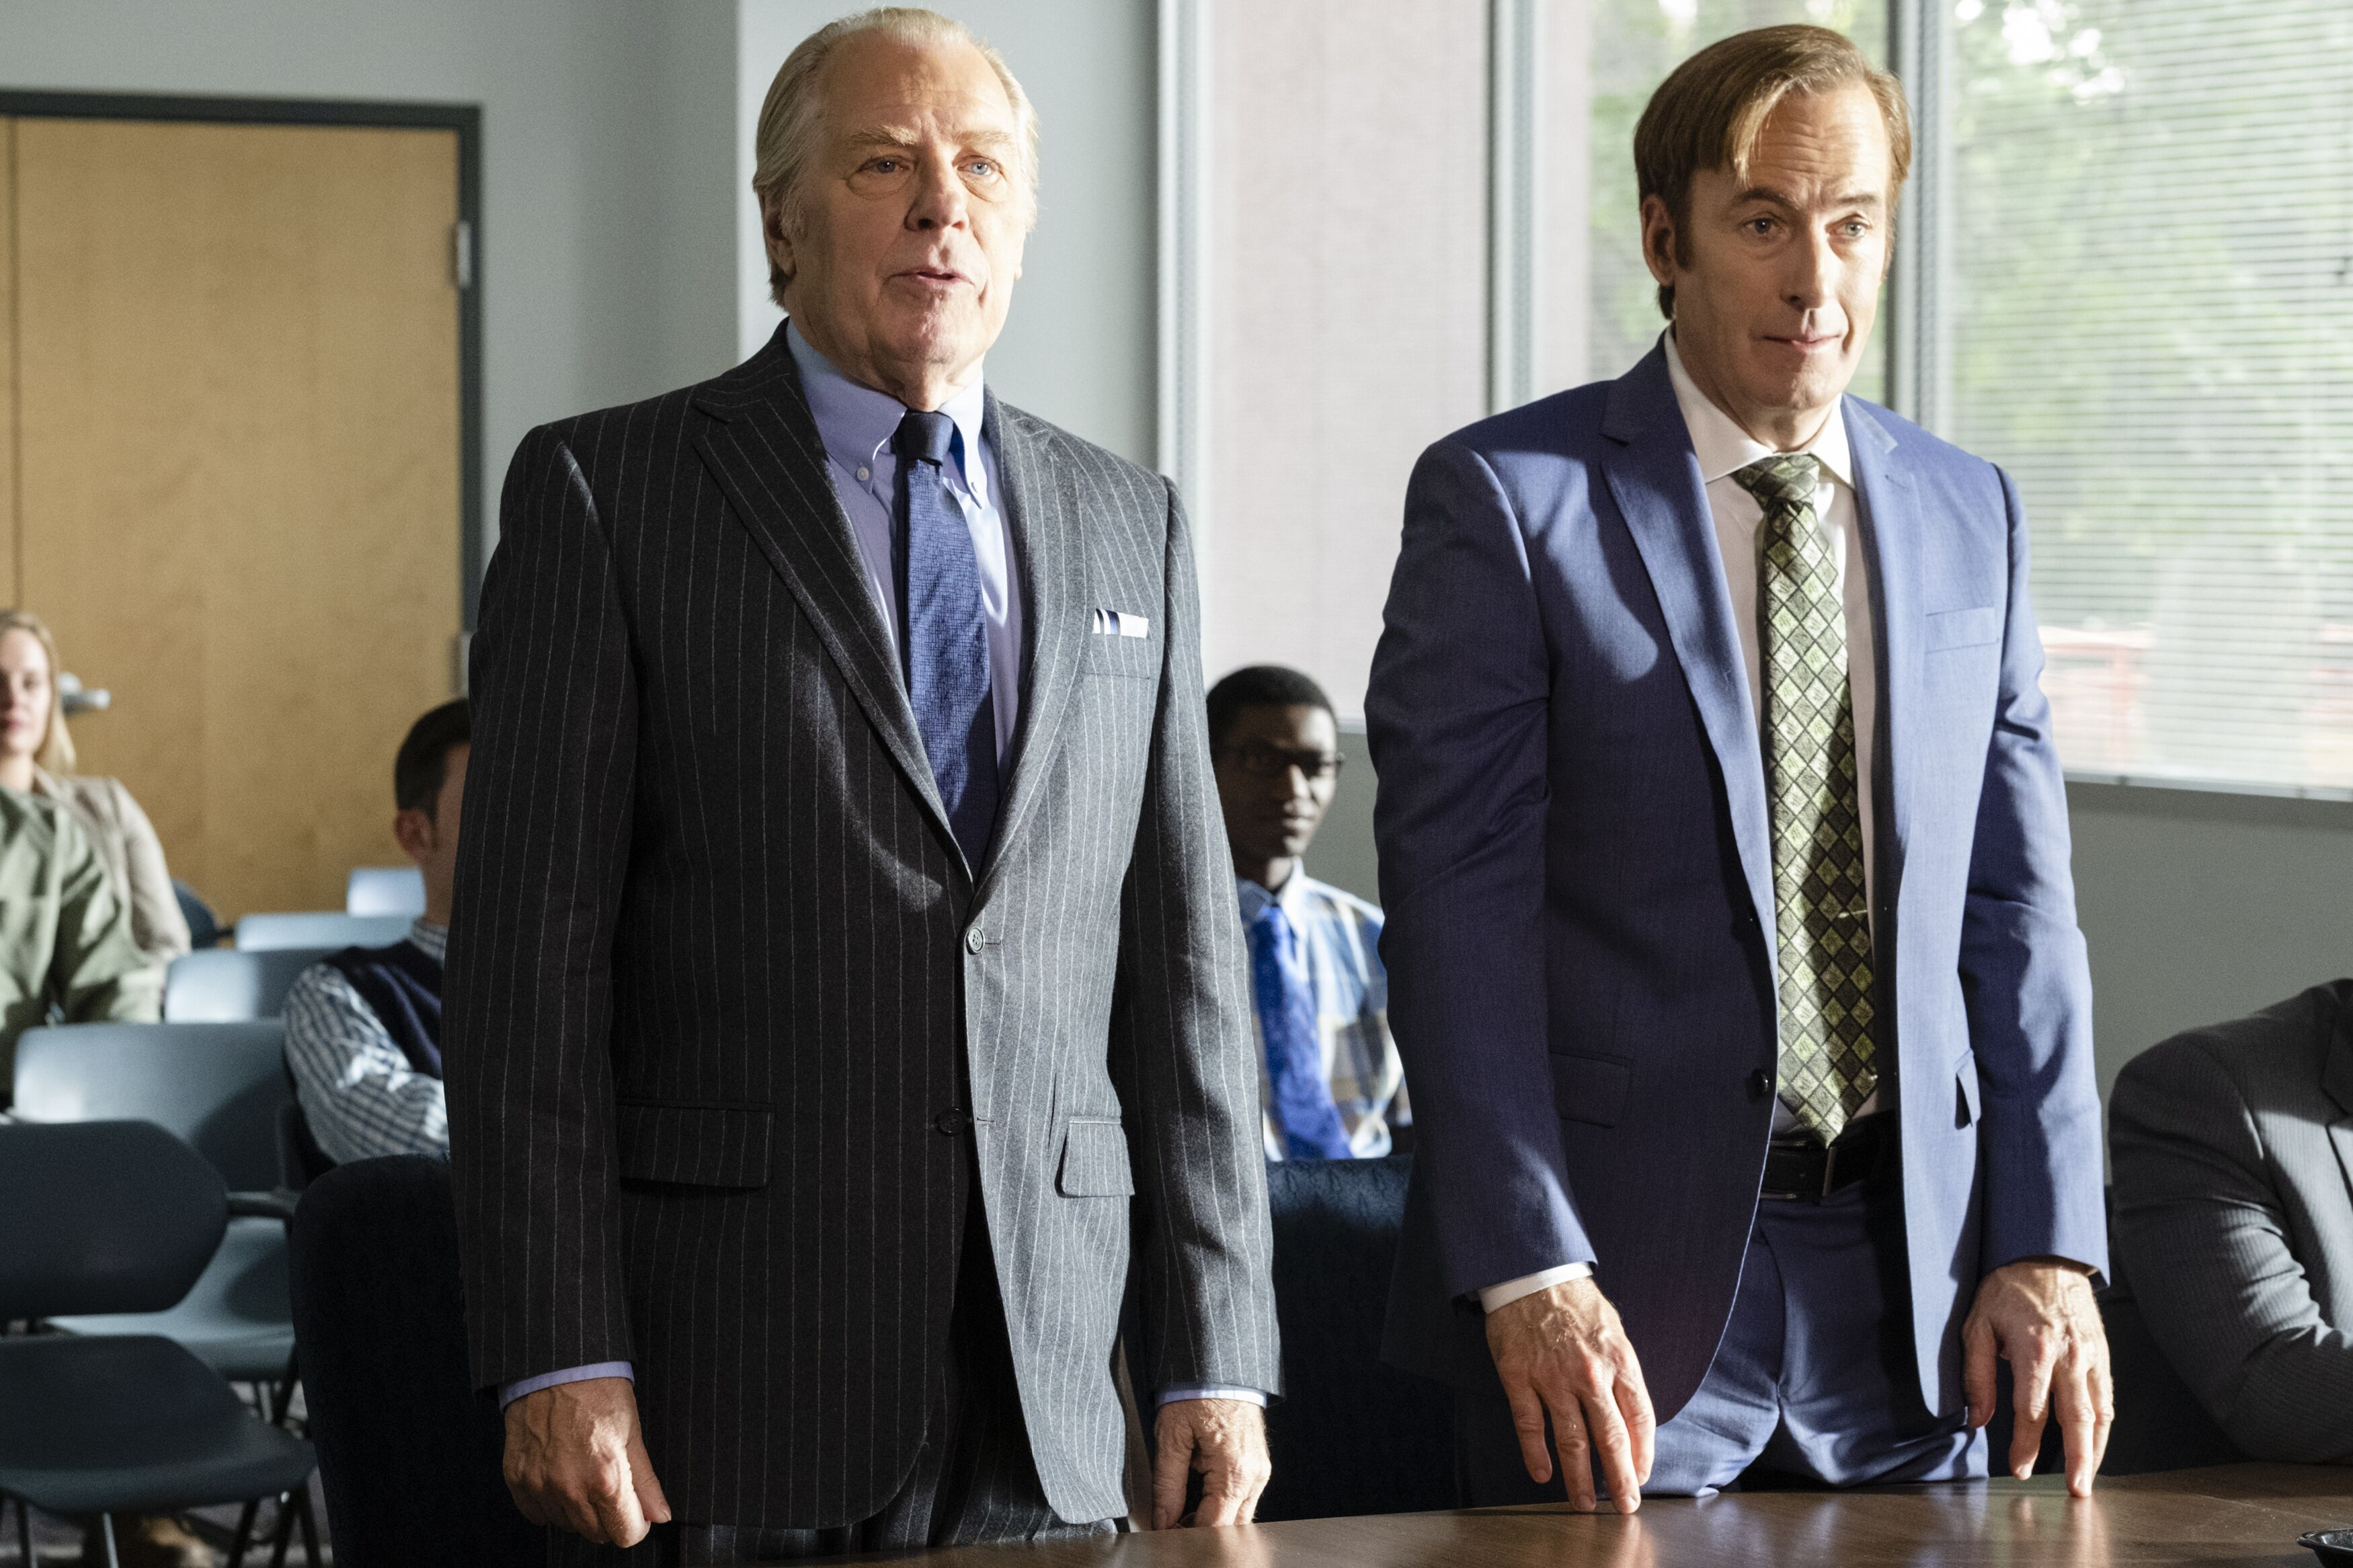 Season 6 will be Better Call Saul's final season, but how will the show end?